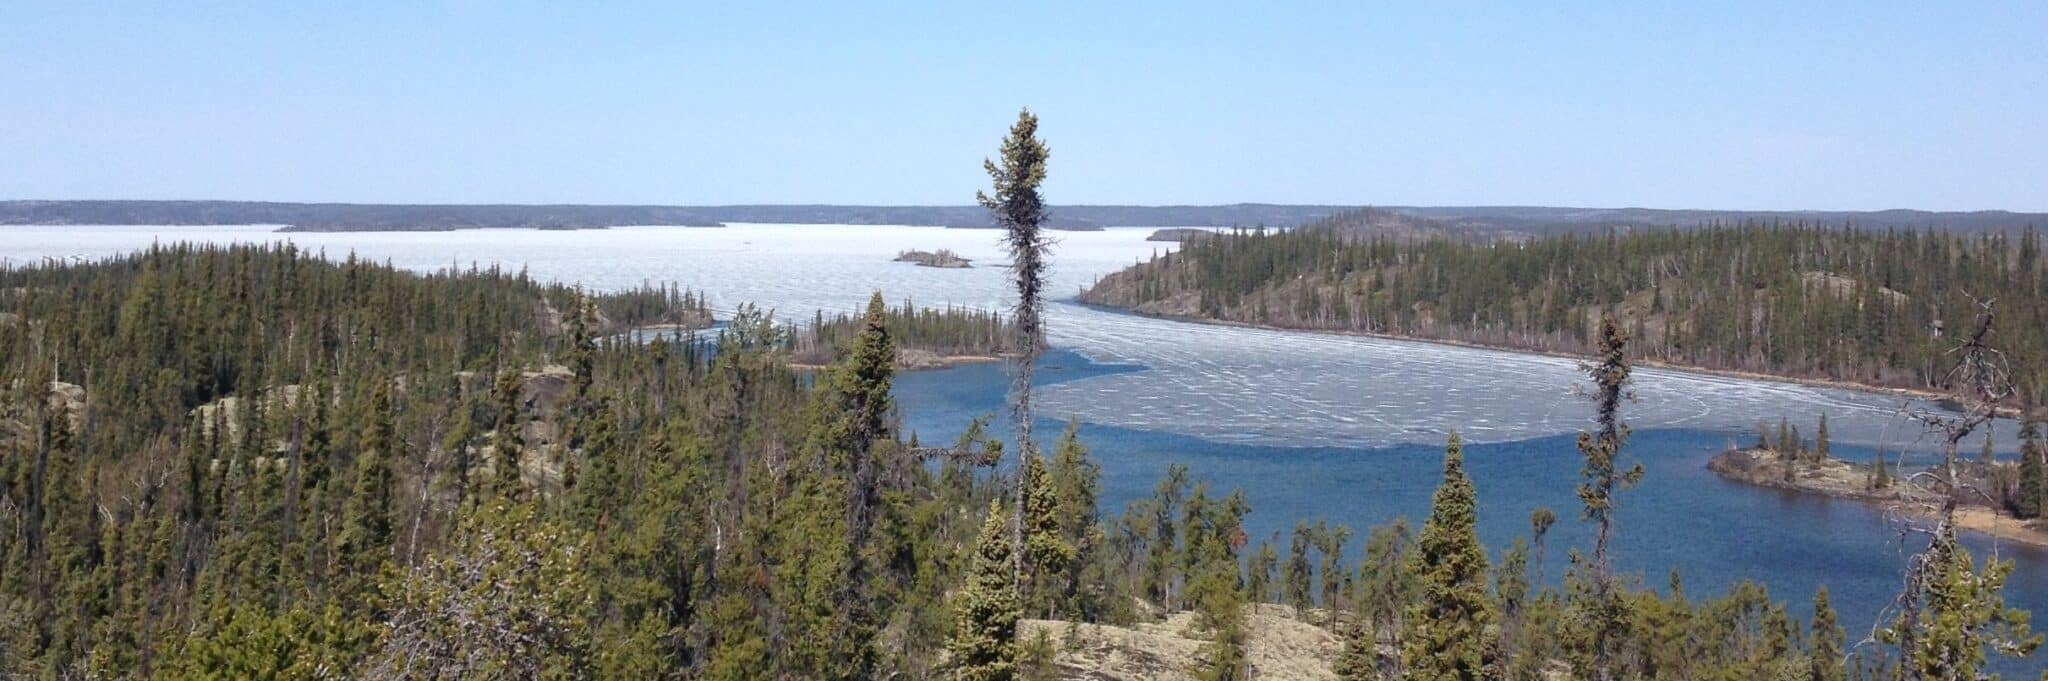 Prelude Lake Northwest Territories